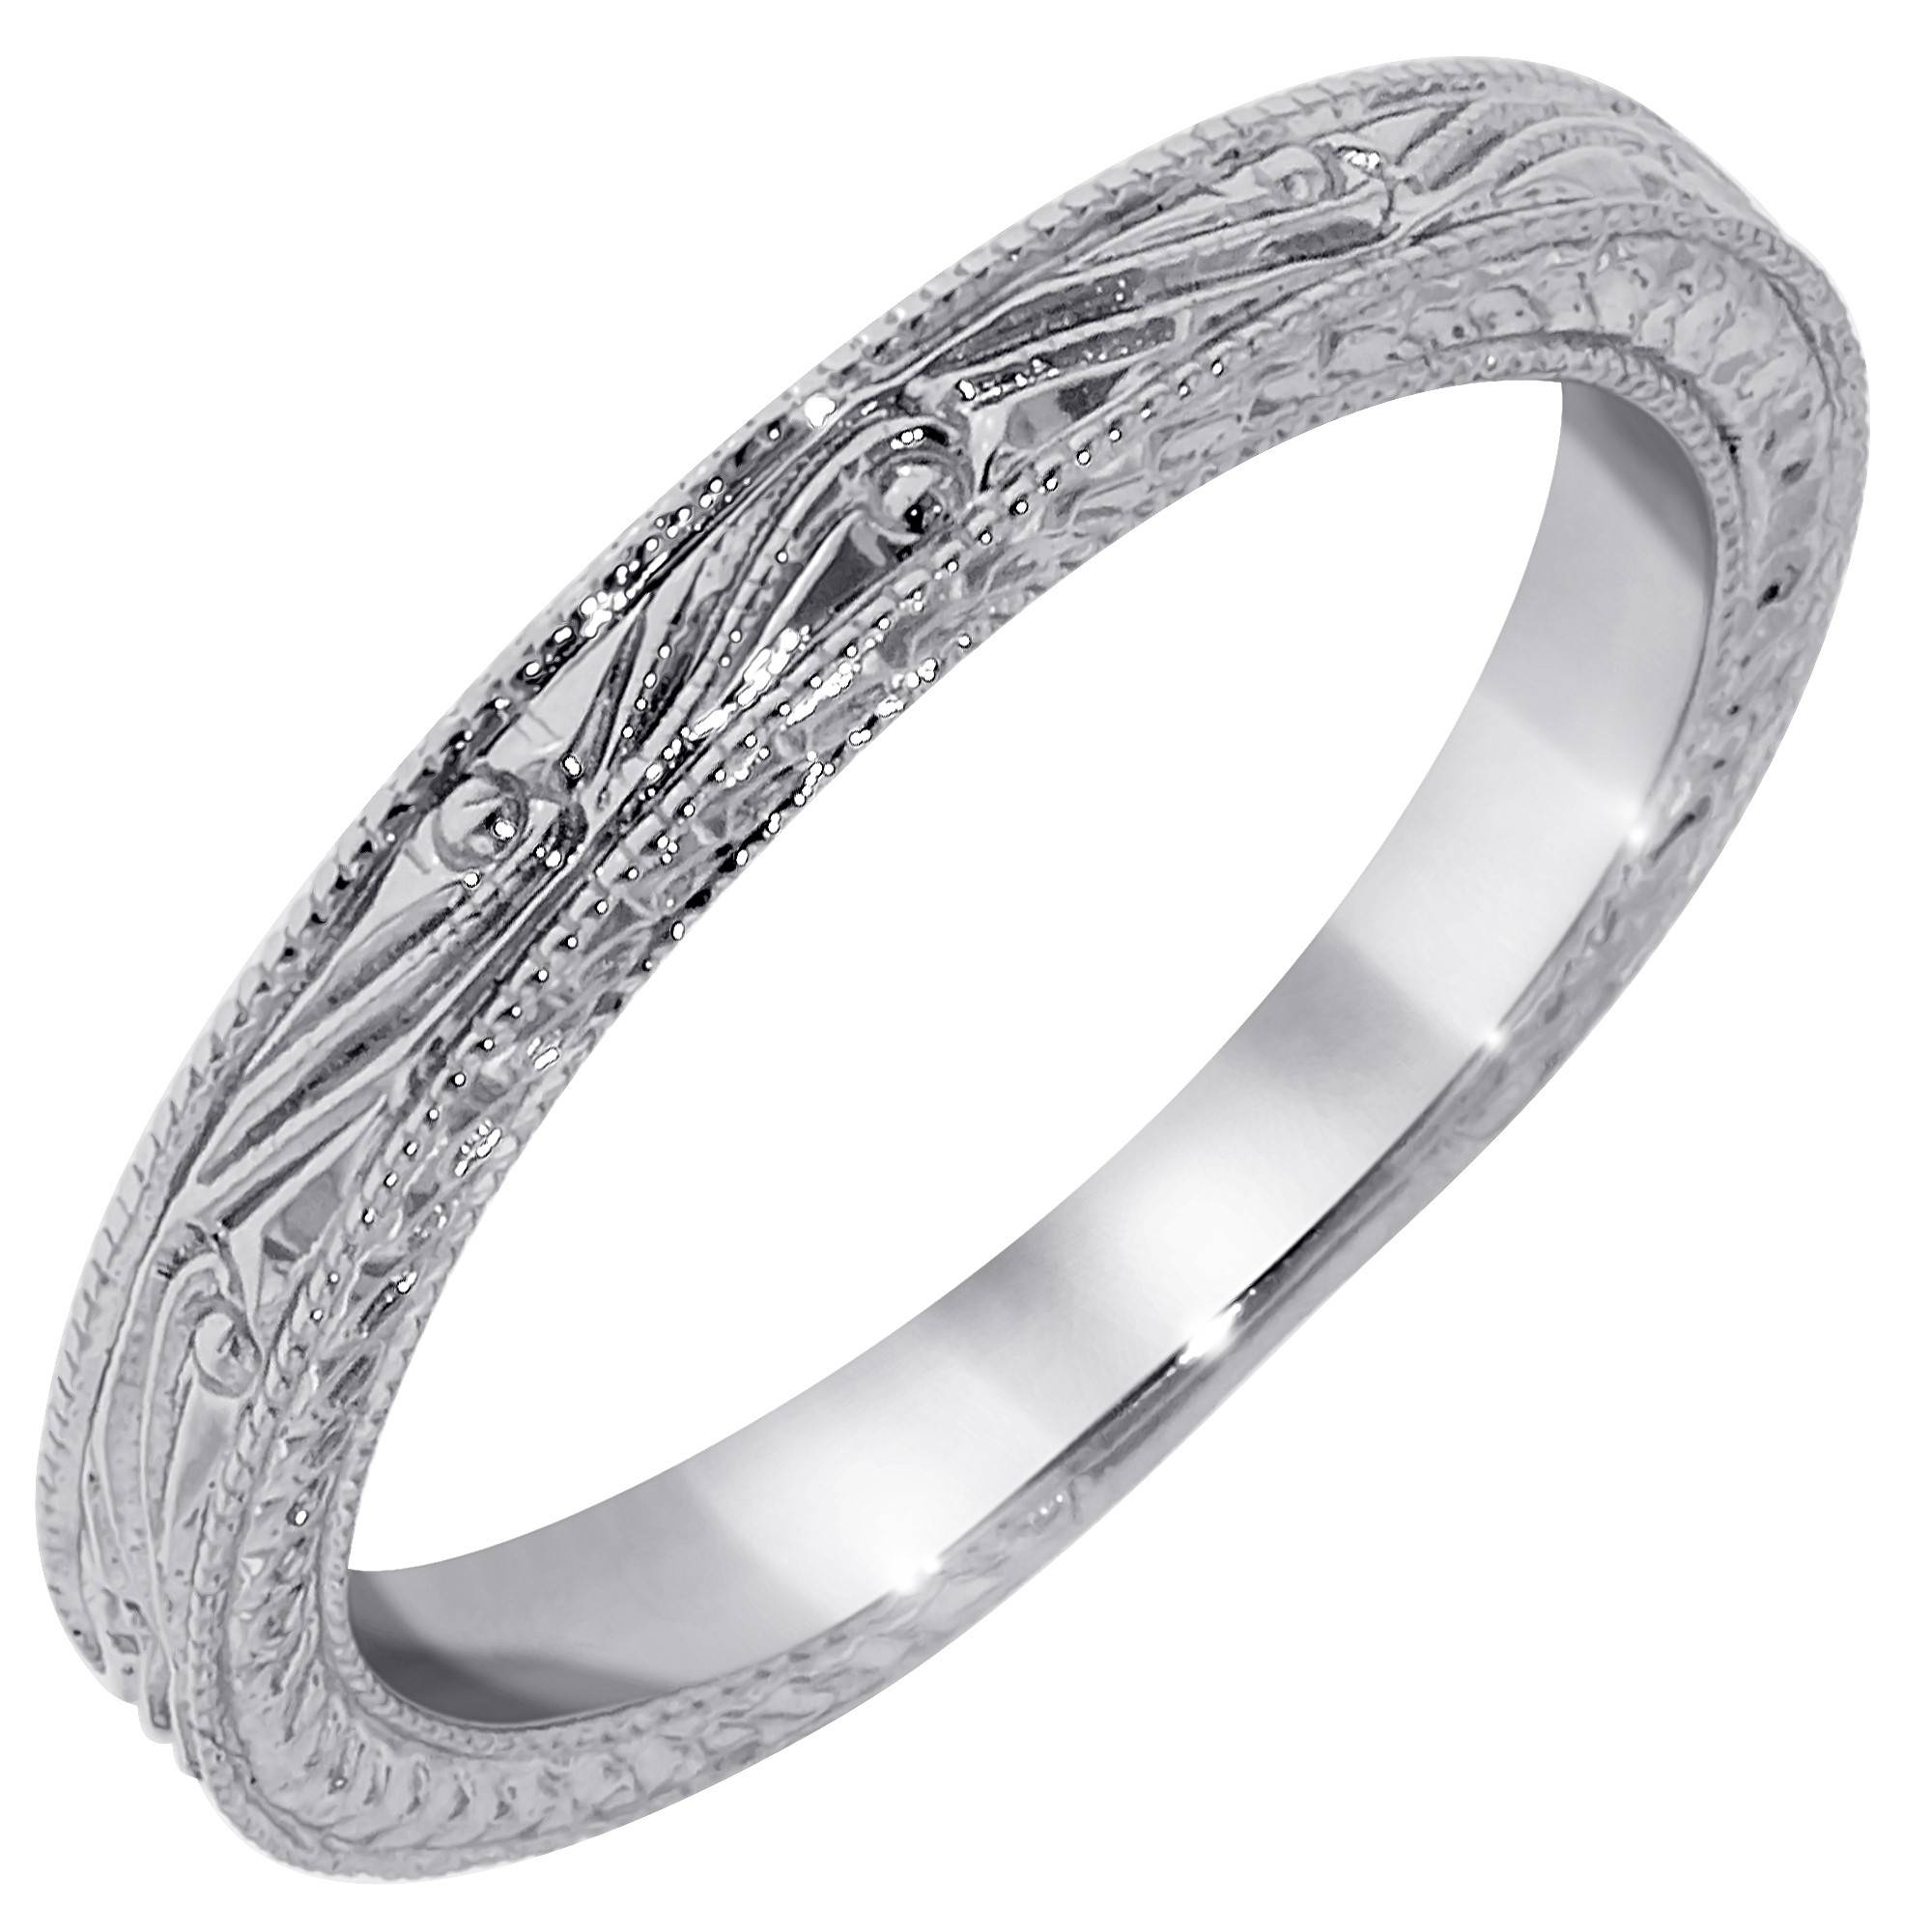 gold tw sapphire in and wedding designs white diamond jewellery band timeless